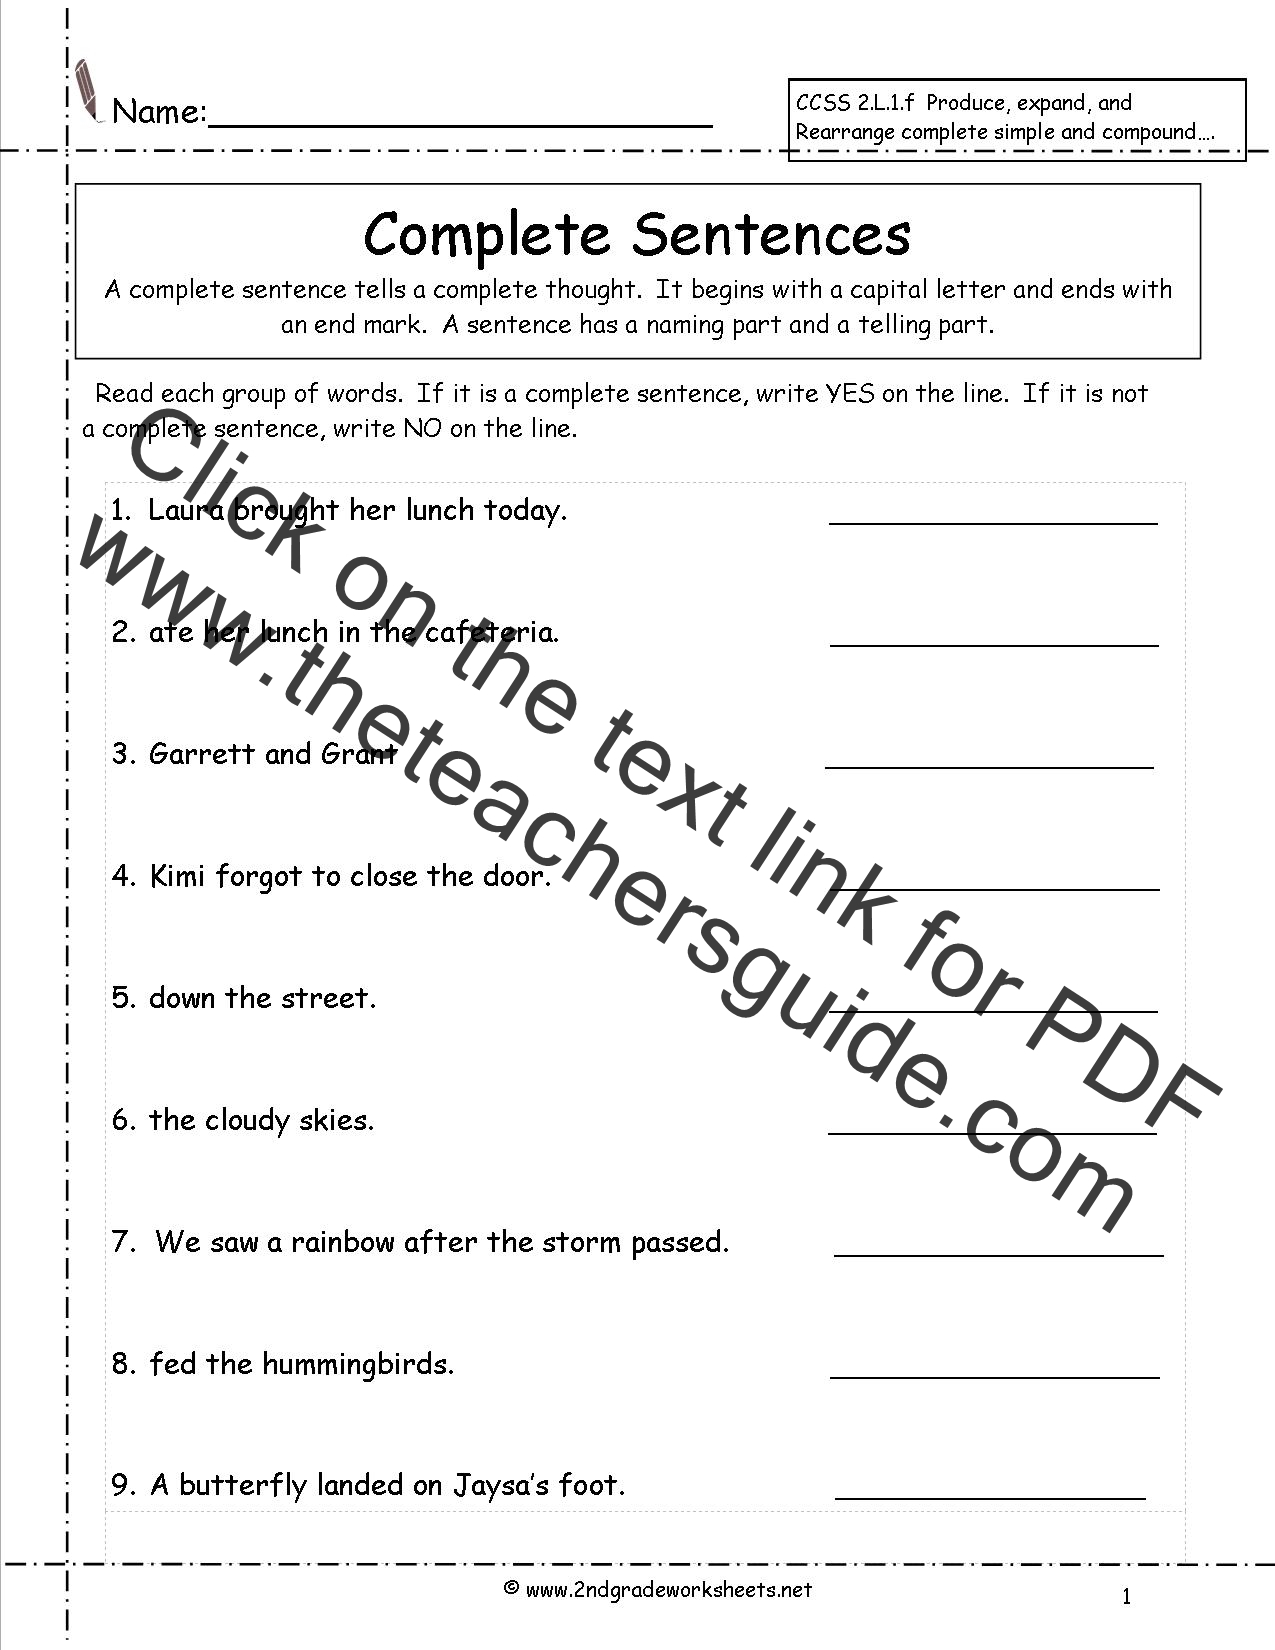 Printables Correcting Sentences Worksheets second grade sentences worksheets ccss 2 l 1 f complete worksheets